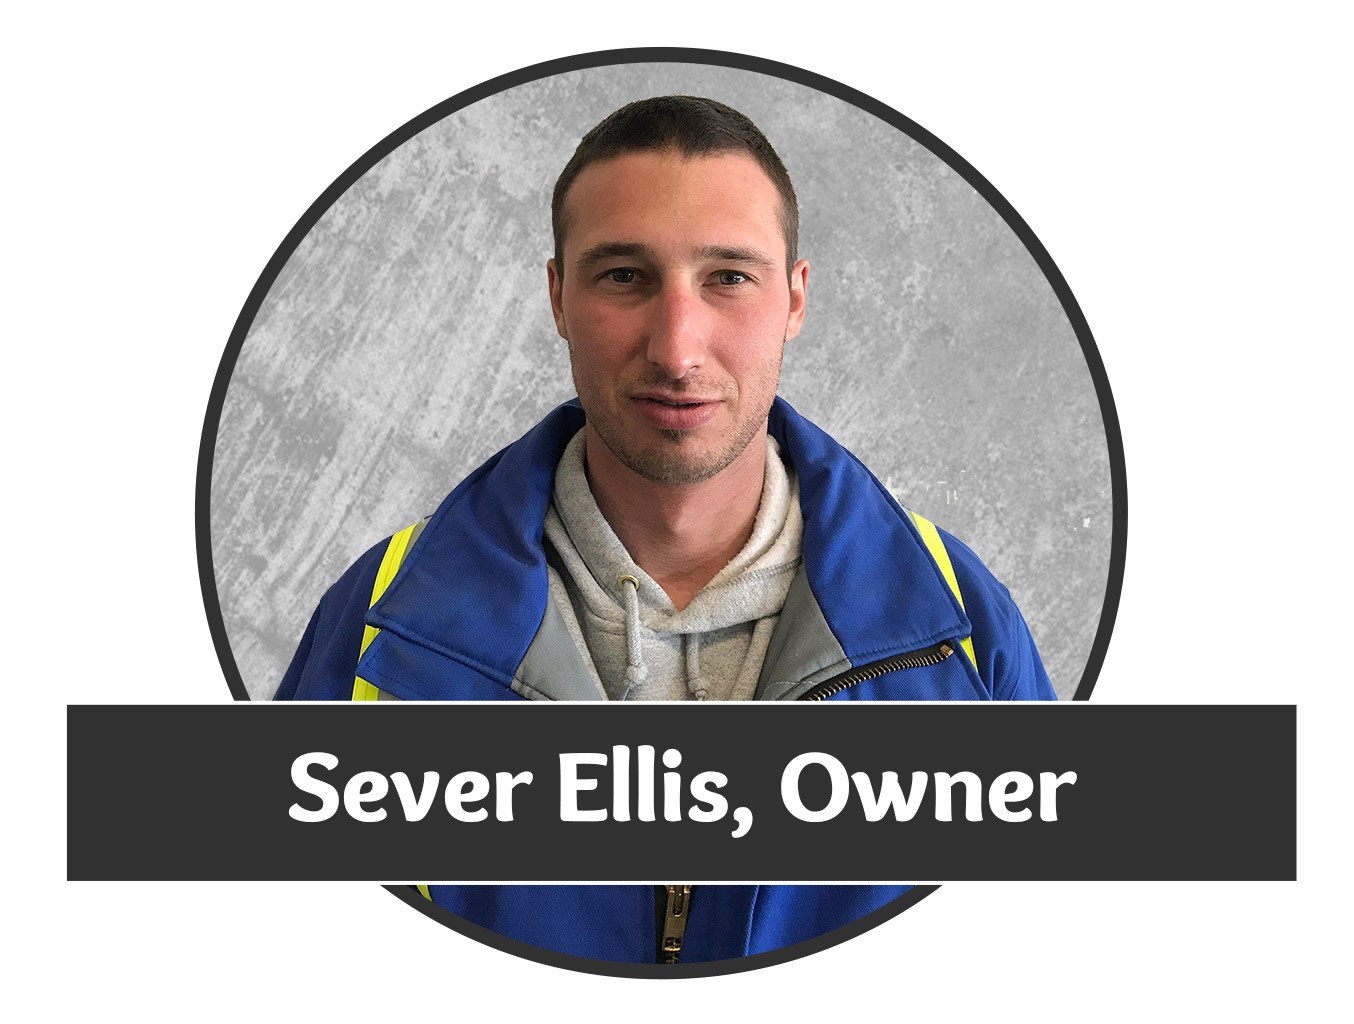 Headshot photo of Sever Ellis, one of the owners for Saskatchewan's superior water well drilling company.